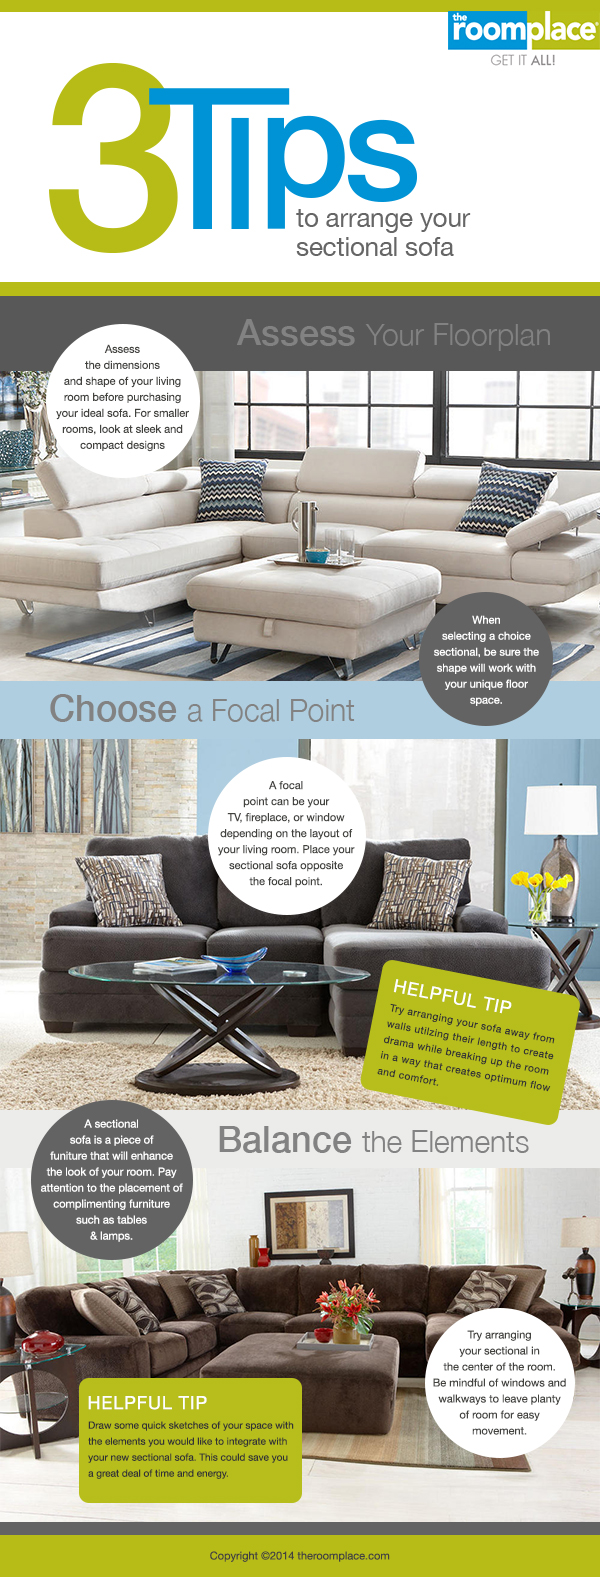 3 tips to arrange your sectional sofa